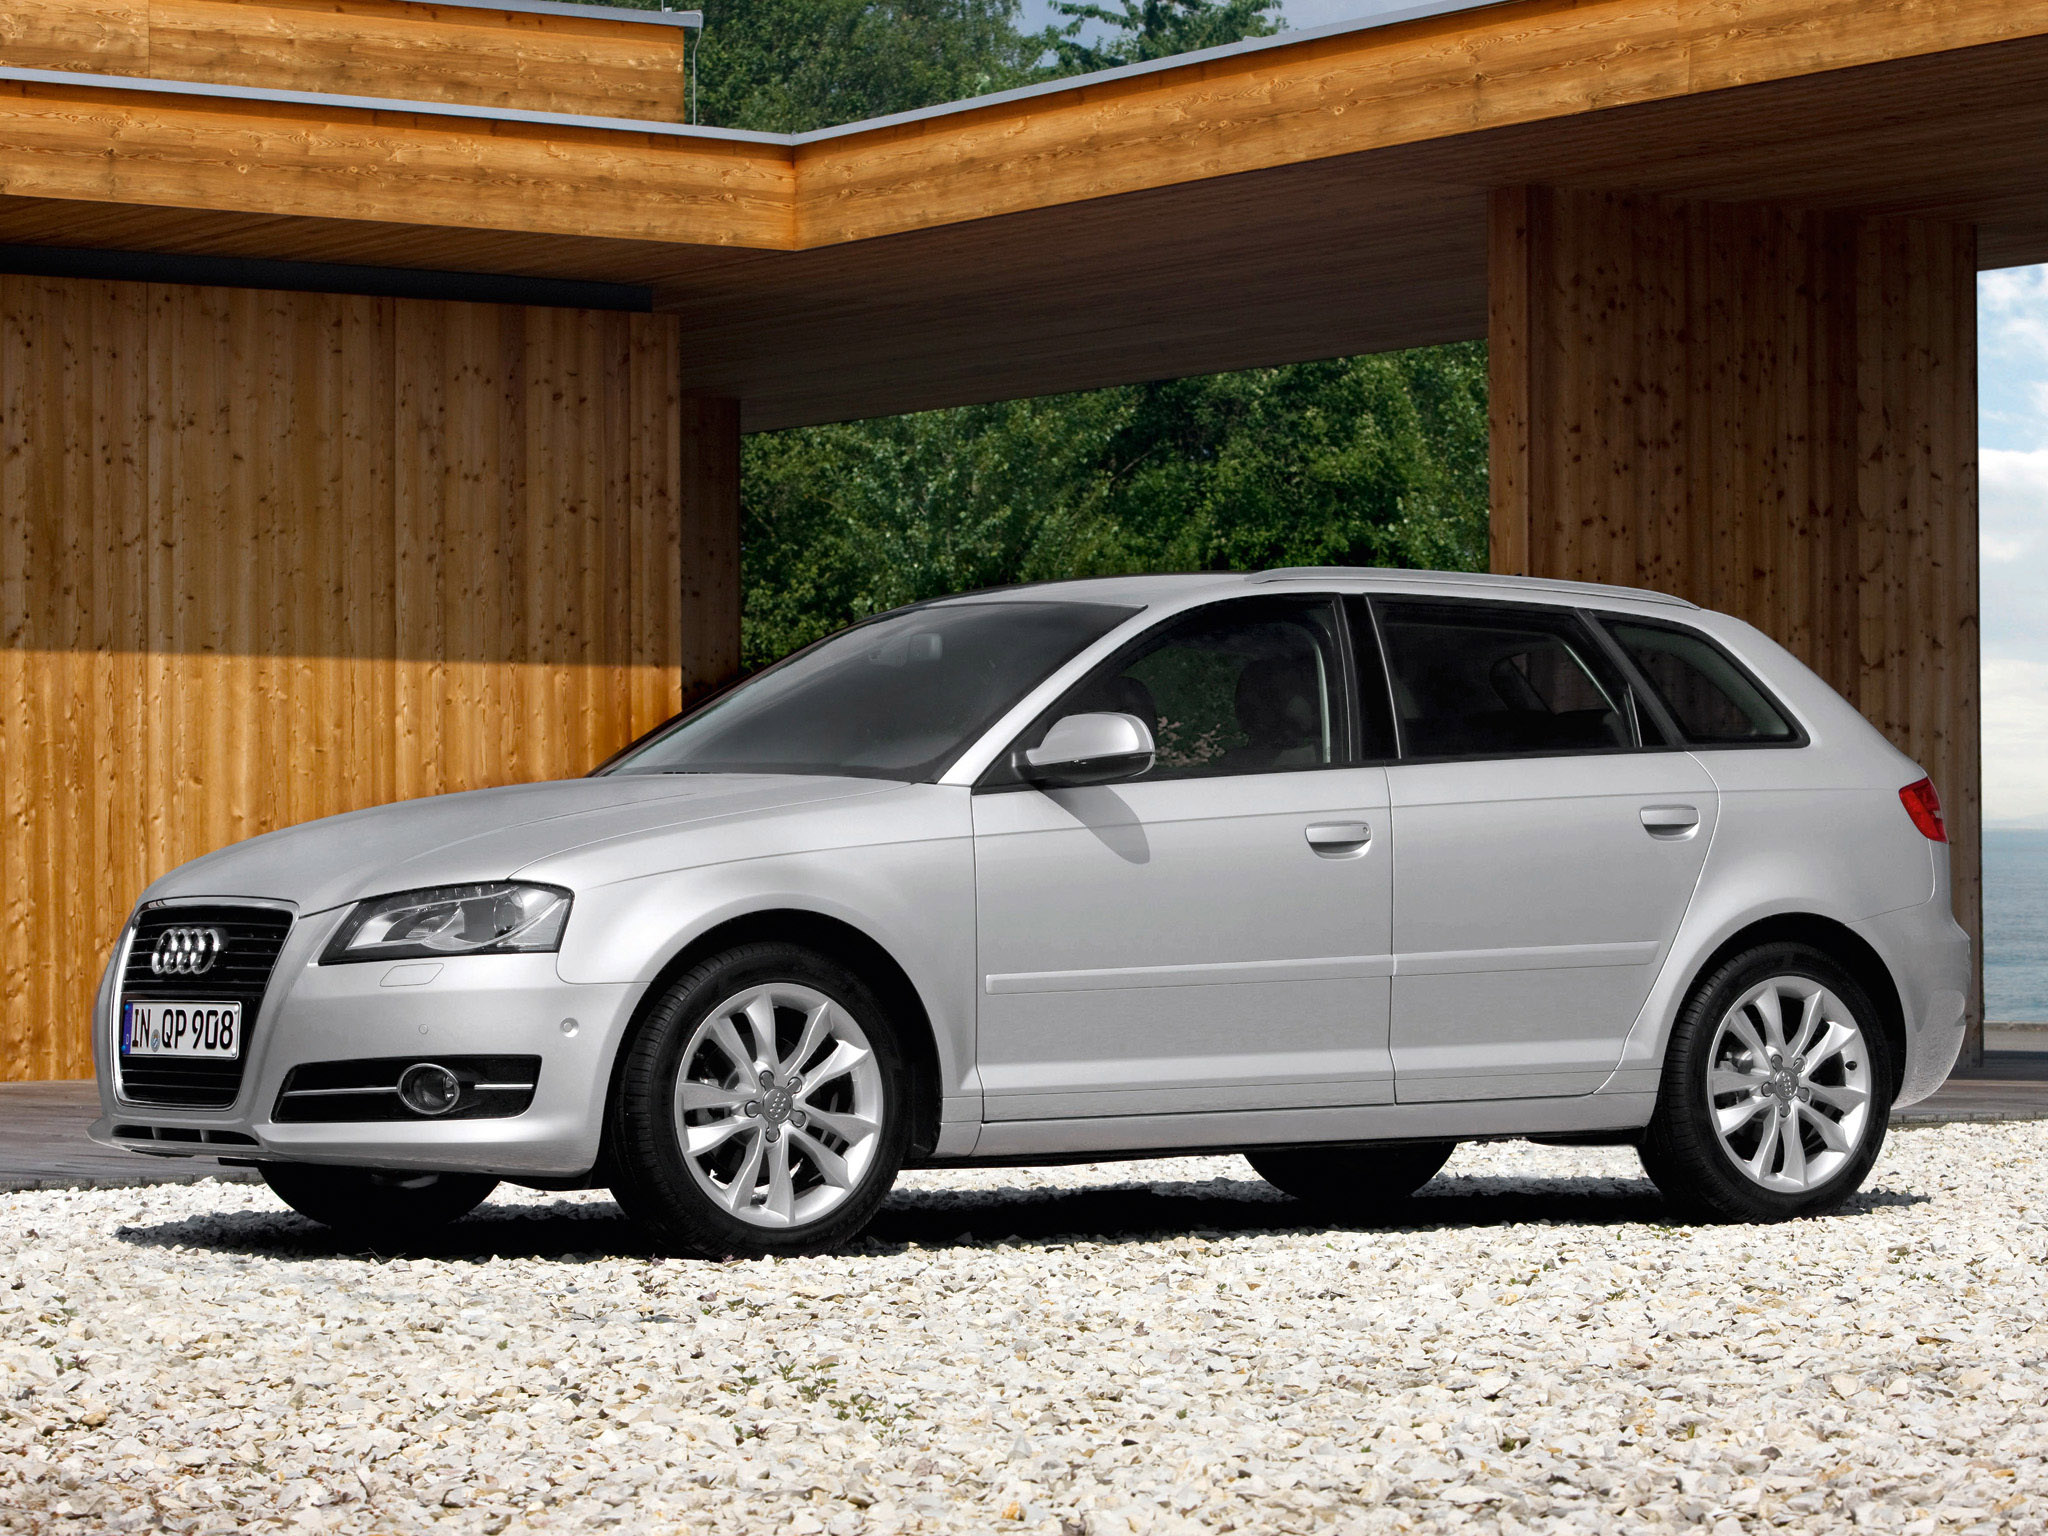 audi a3 sportback 8pa 2010 audi a3 sportback 8pa 2010 photo 11 car in pictures car photo gallery. Black Bedroom Furniture Sets. Home Design Ideas